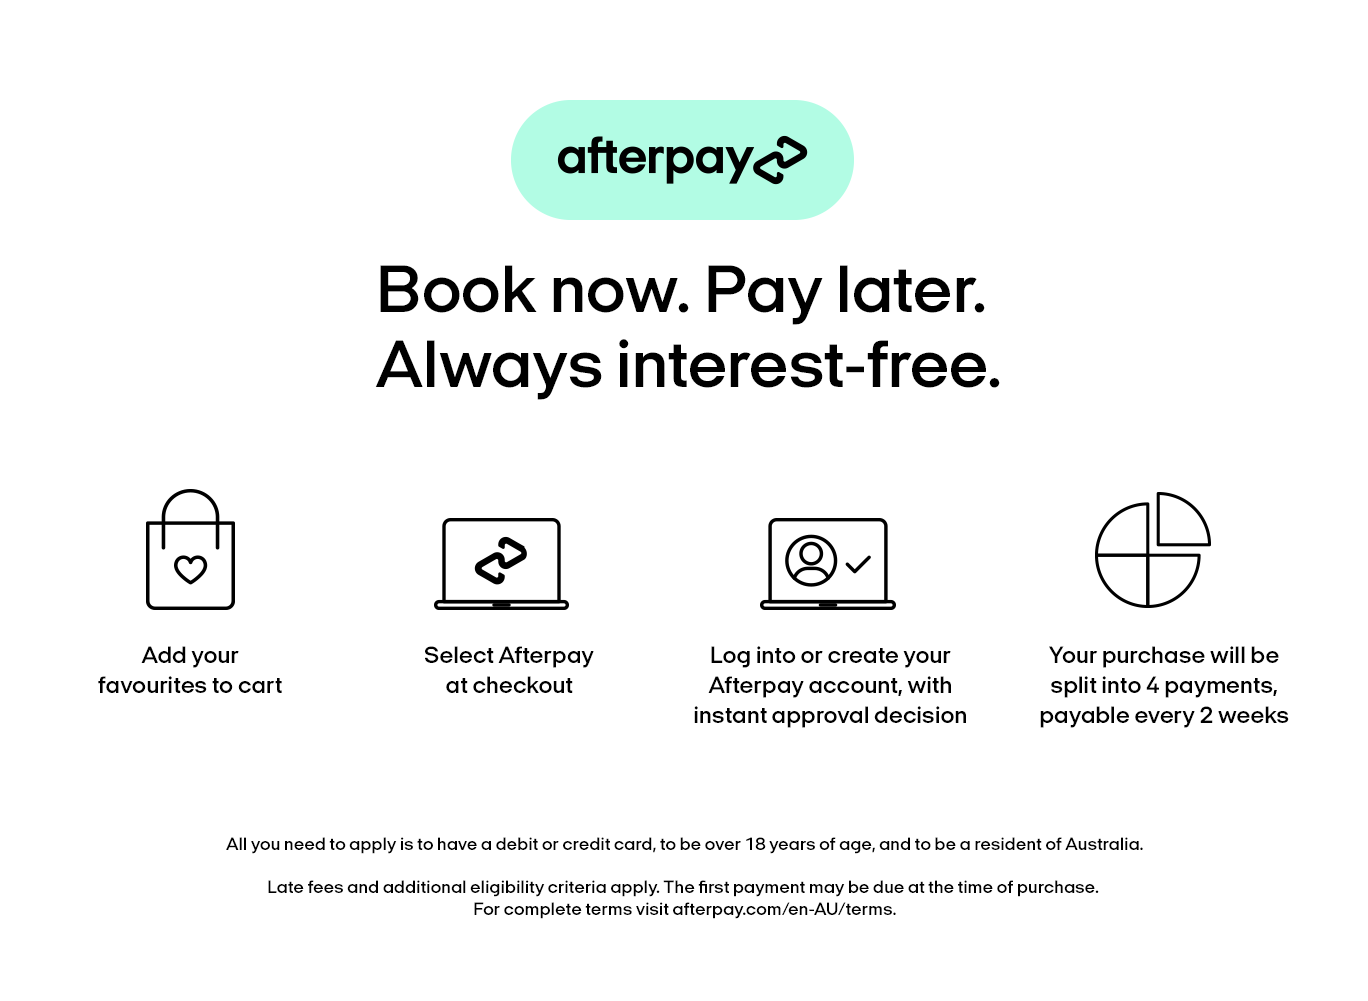 dentist with Afterpay